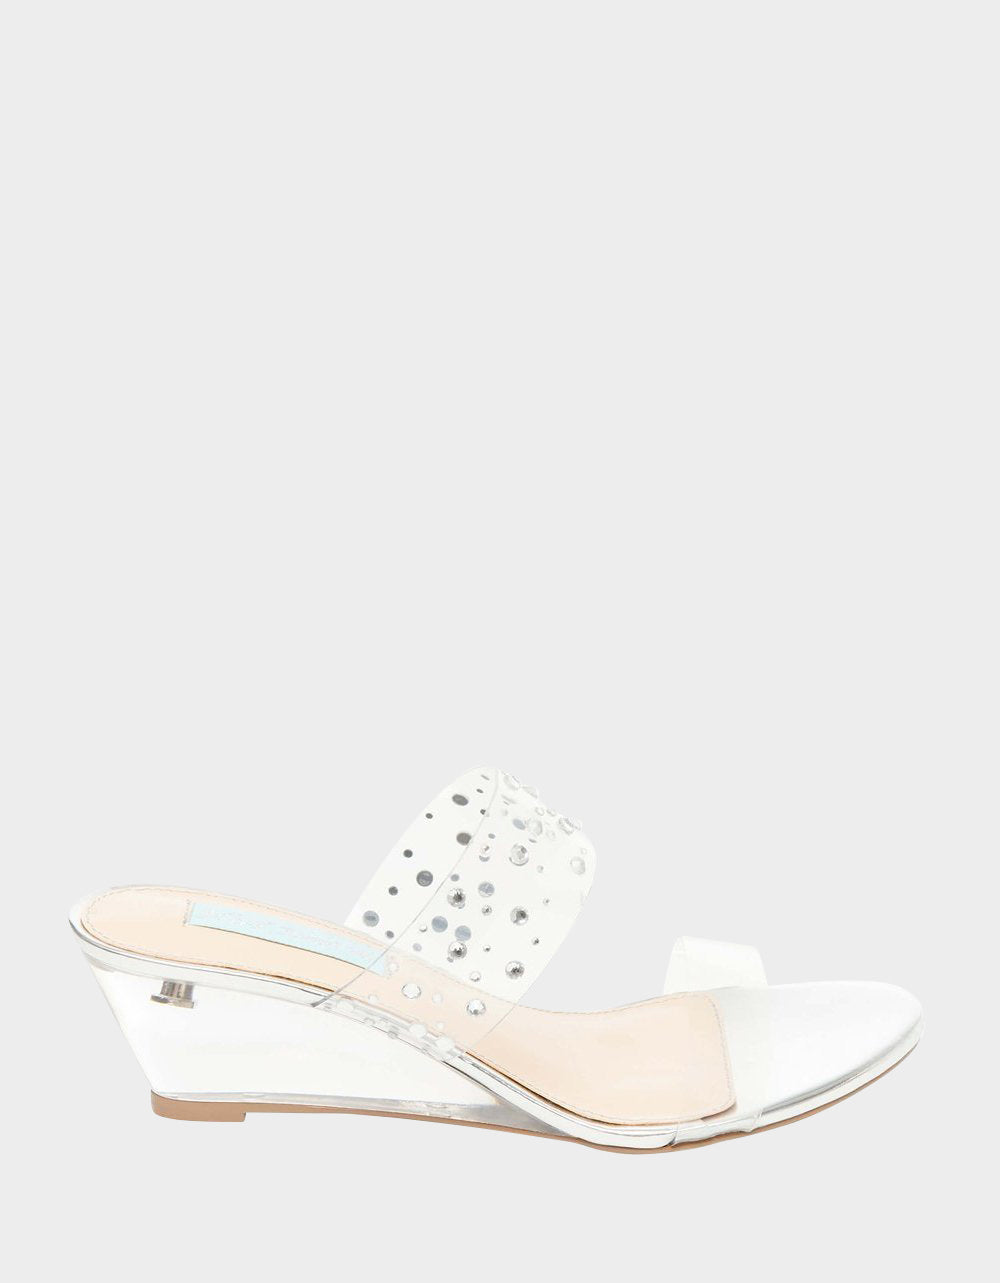 SB-VANA SILVER - SHOES - Betsey Johnson